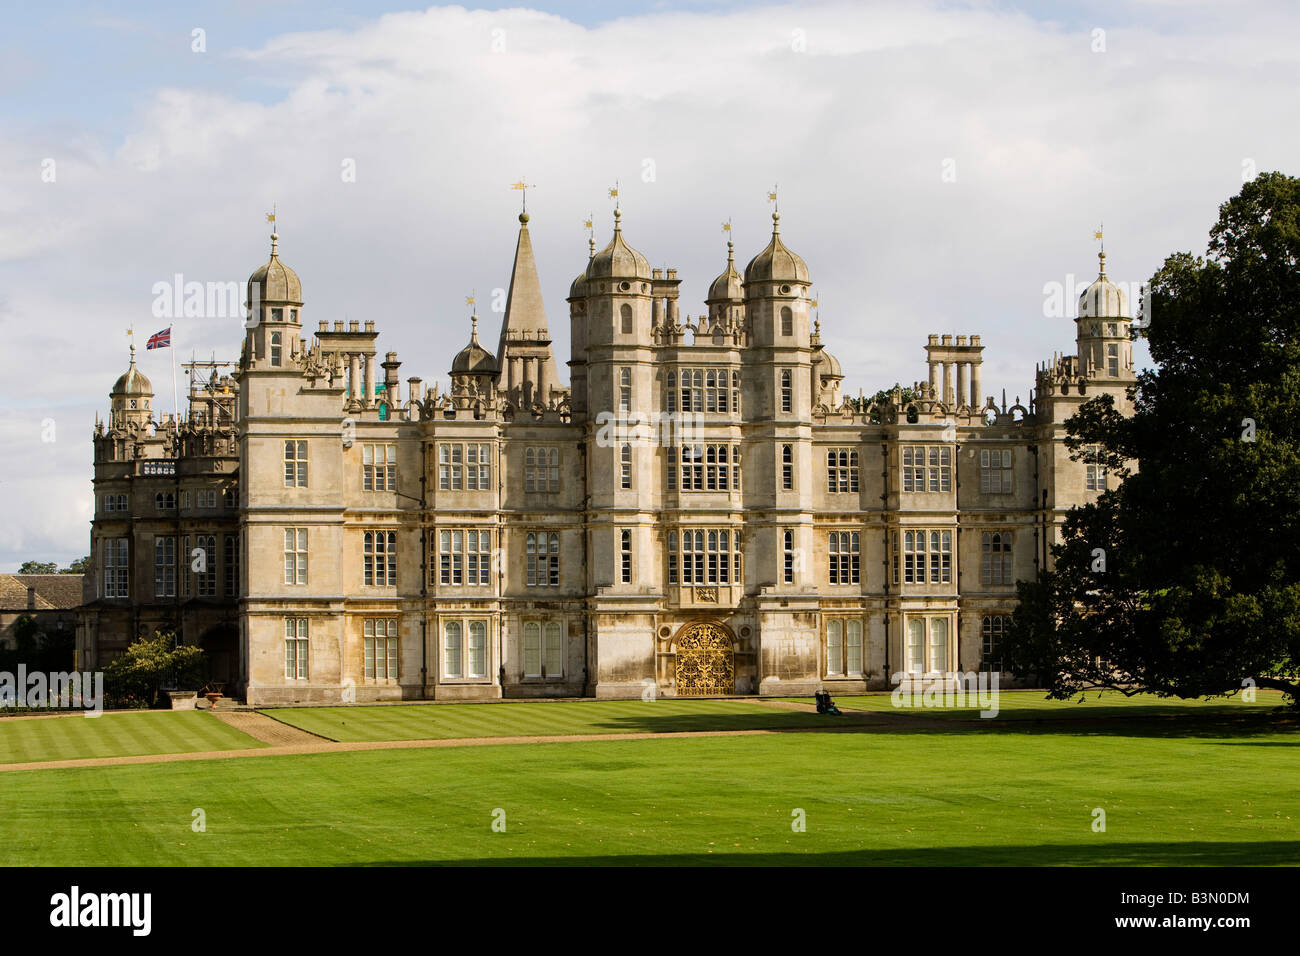 Burghley House near Stamford in Lincolnshire UK is home to the Burghley Horse Trials - Stock Image